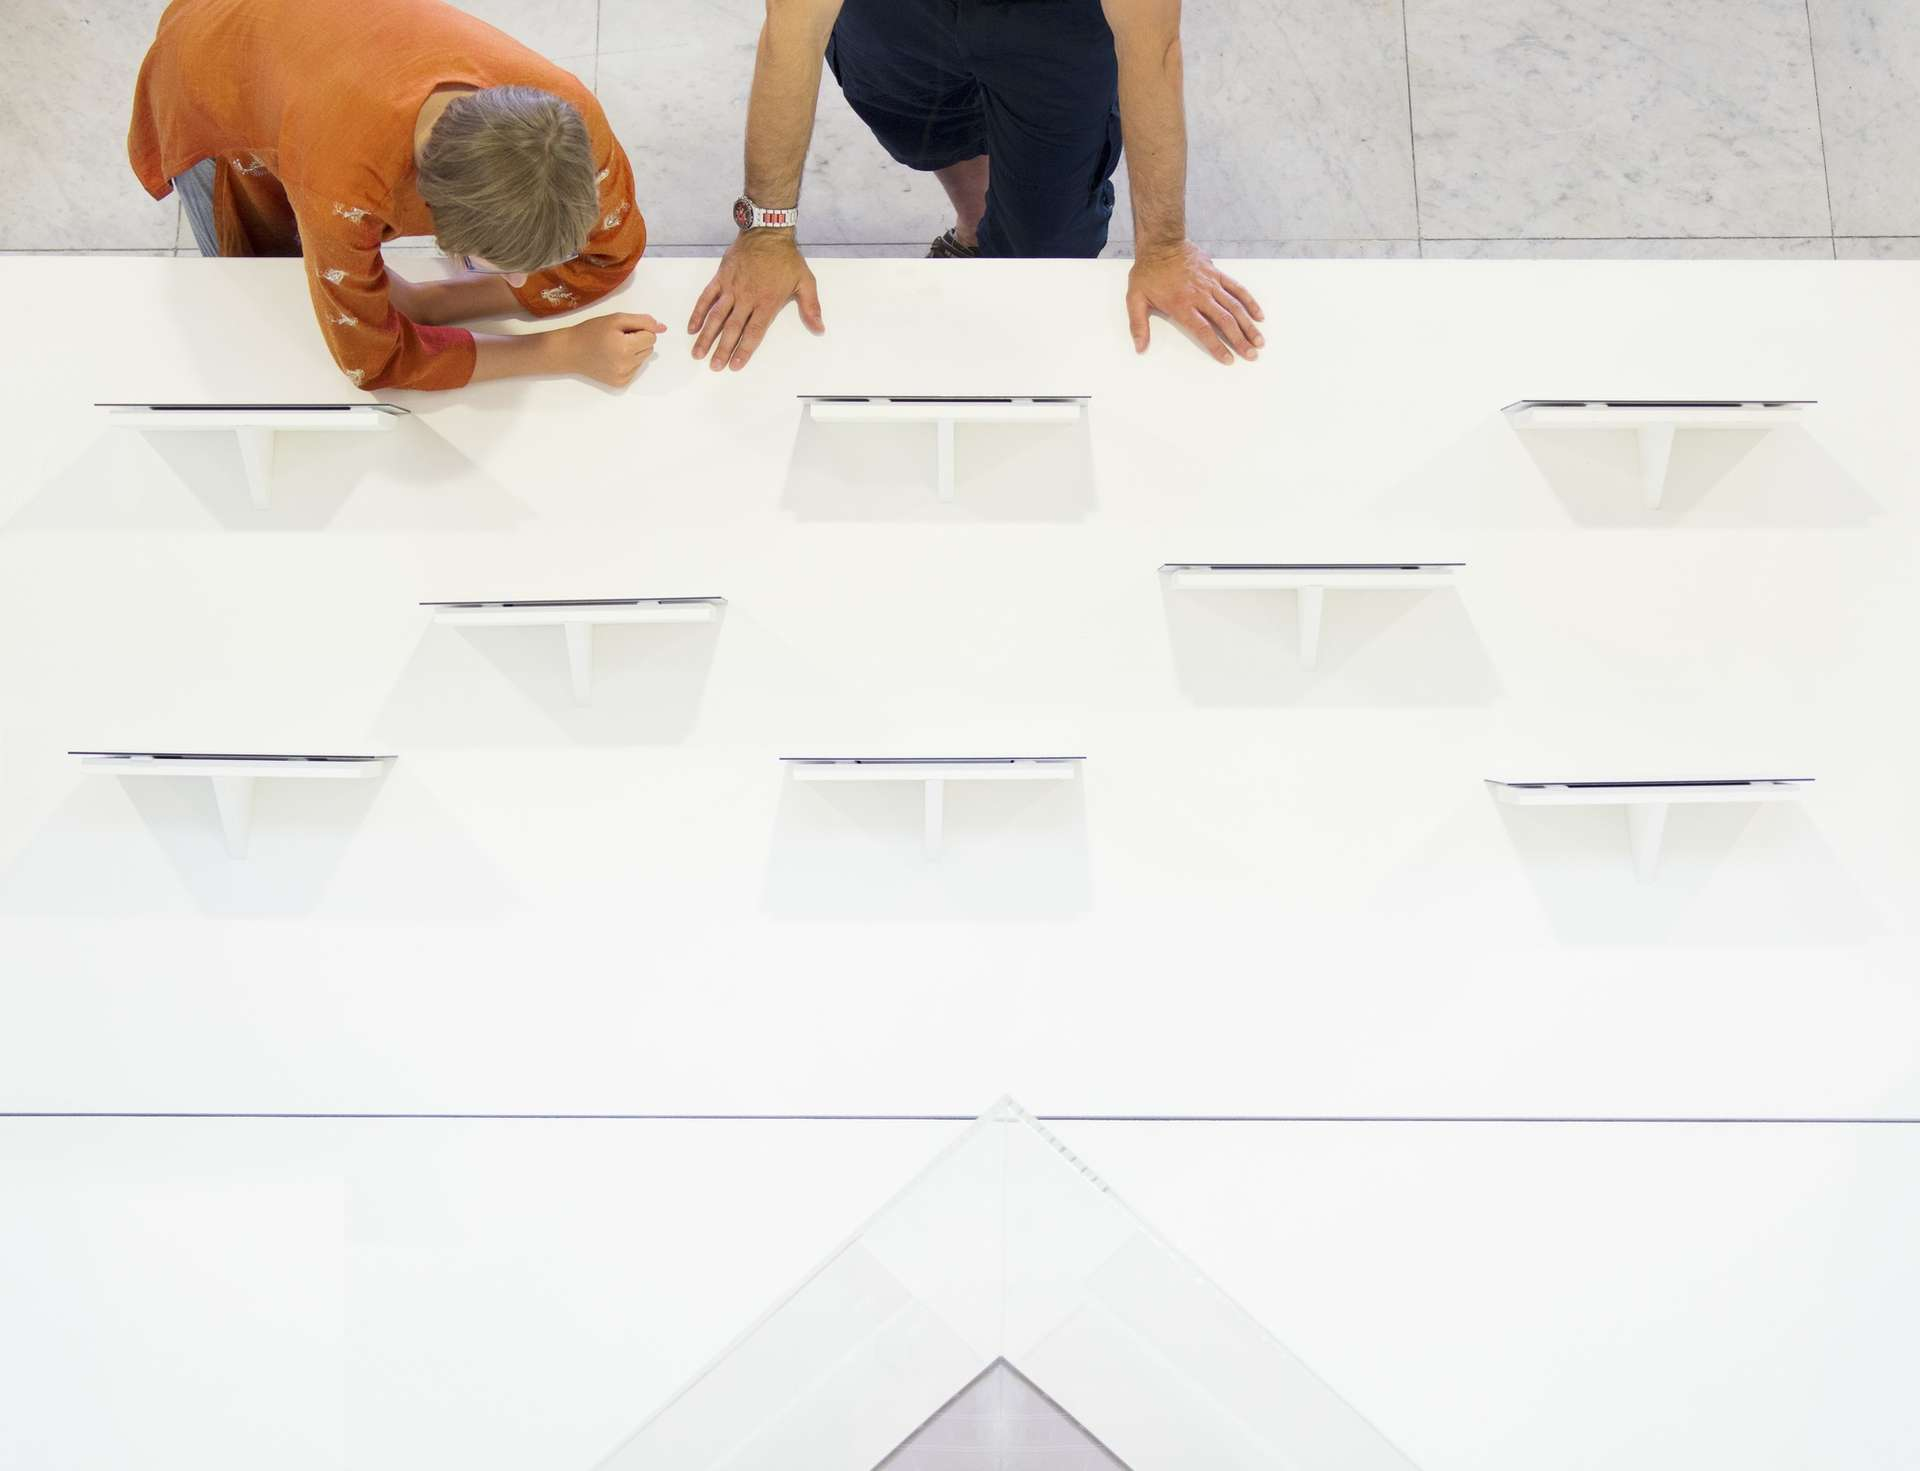 Aerial view of people looking at tablets